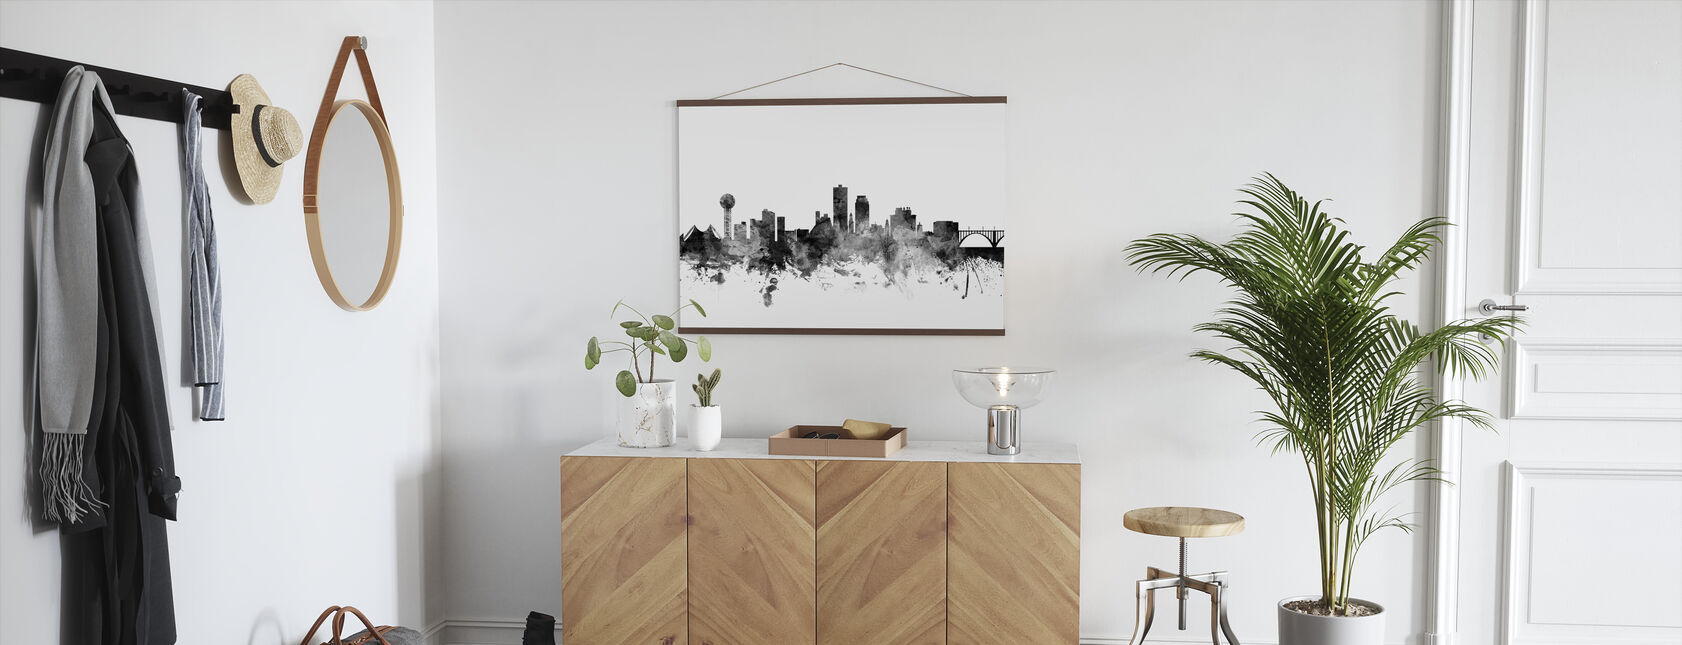 Knoxville Tennessee Skyline Black - Poster - Hallway